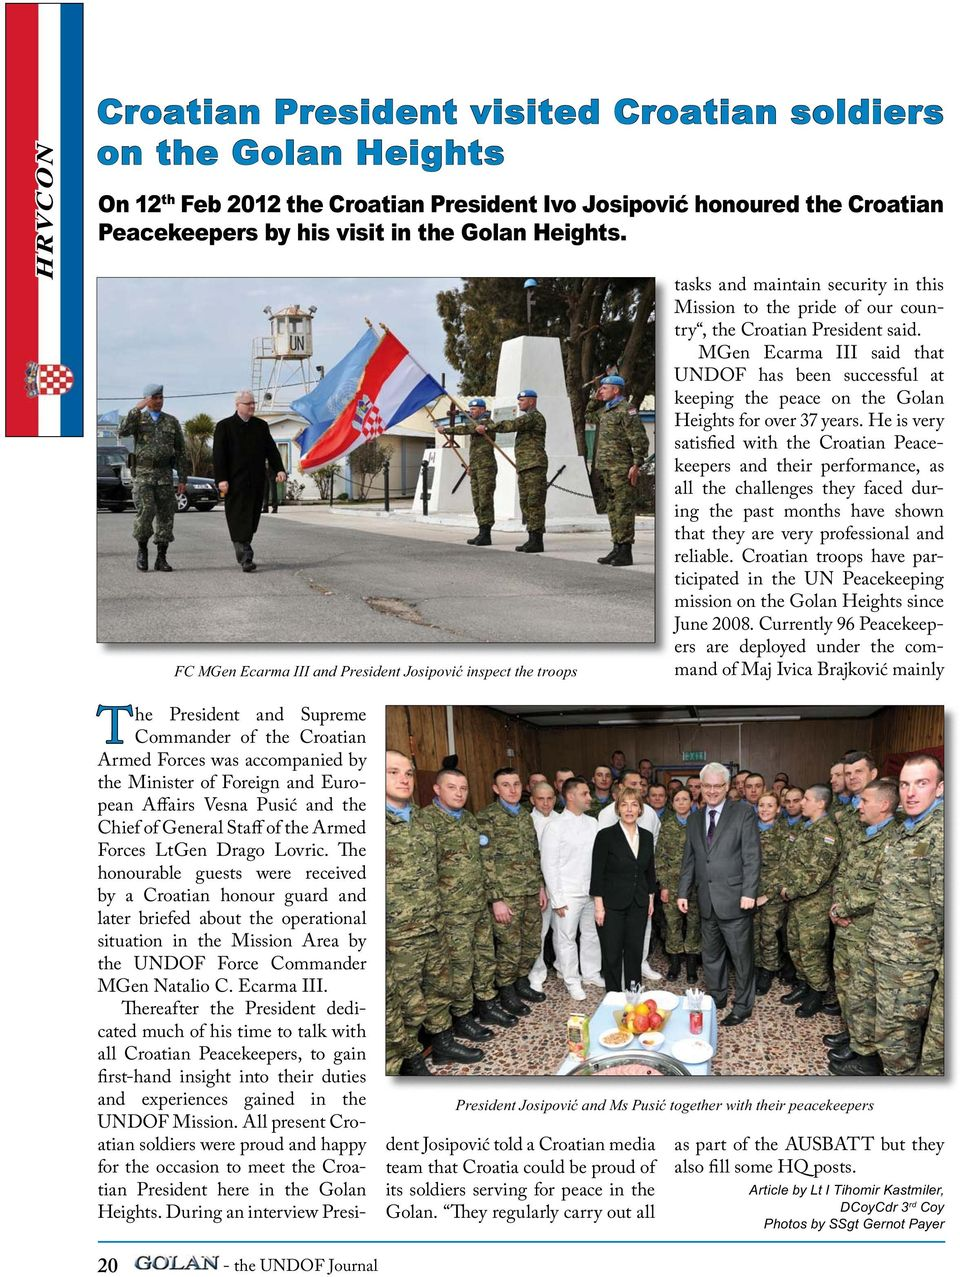 Drago Lovric. The honourable guests were received by a Croatian honour guard and later briefed about the operational situation in the Mission Area by the UNDOF Force Commander MGen Natalio C.